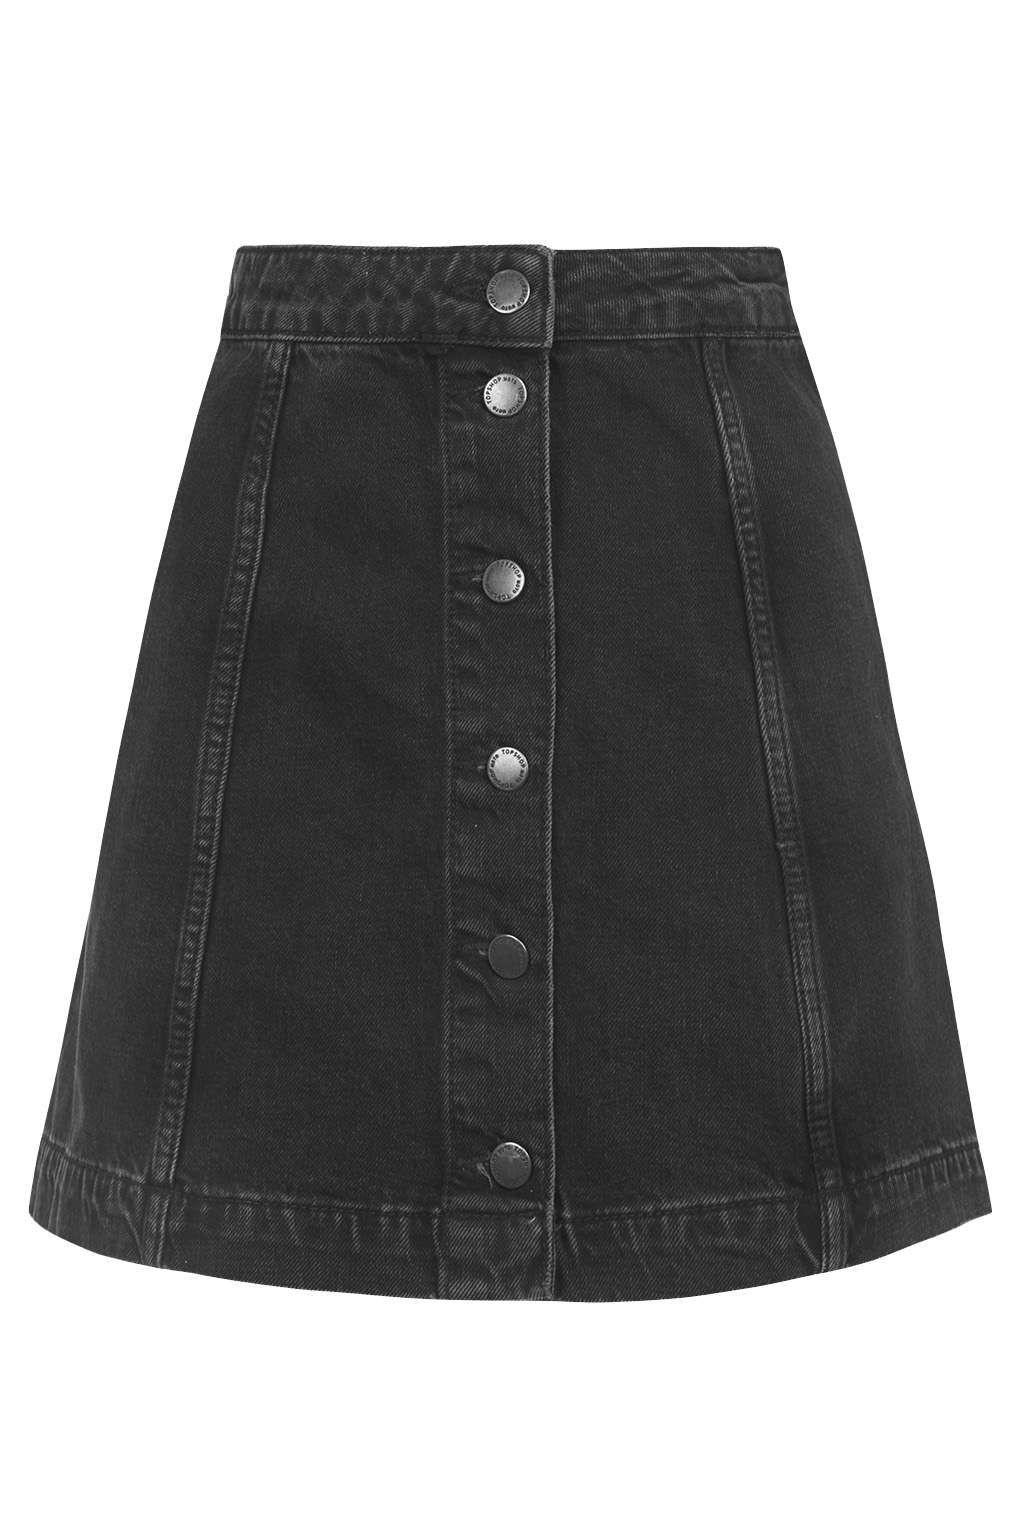 868afaa78a MOTO Denim Button A-Line Skirt - Skirts - Clothing - Topshop | wear ...